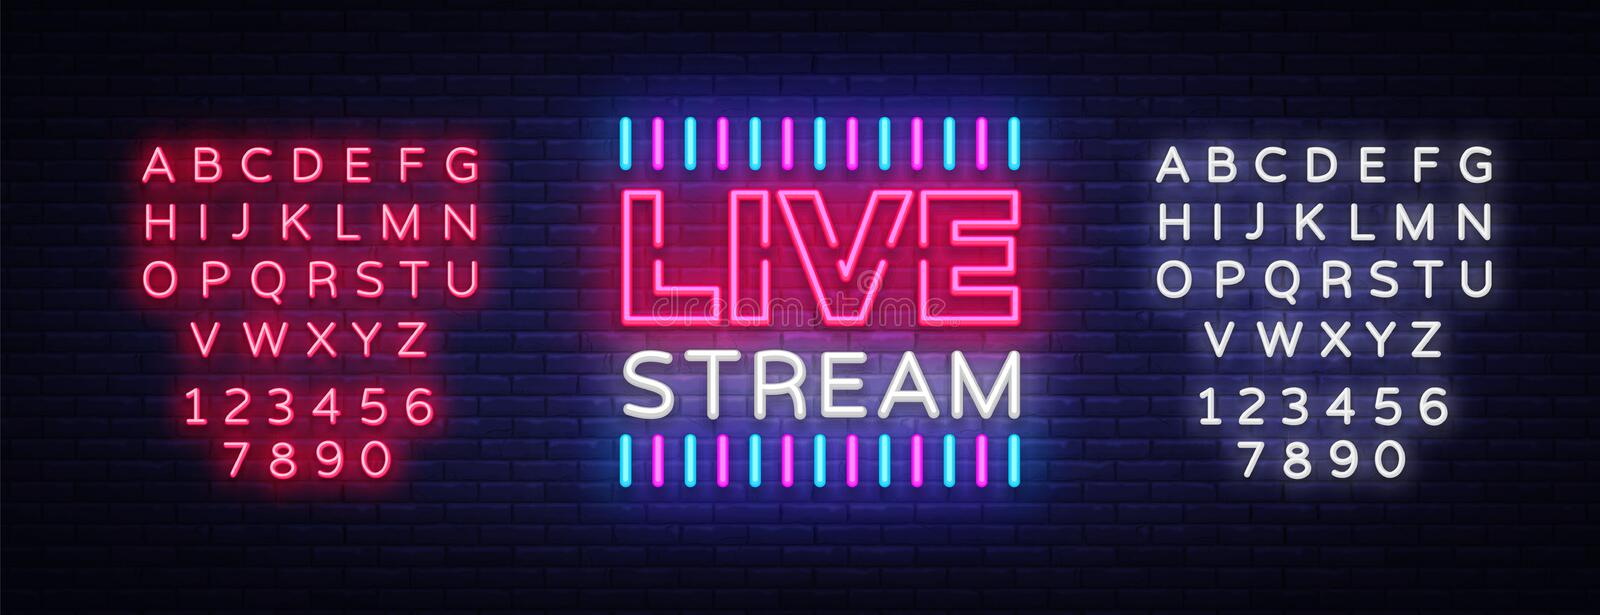 Neon sign live stream design element. Light banner, neon signboard for news and TV shows, as well as live broadcasts. Vector illustration. Editing text neon stock illustration